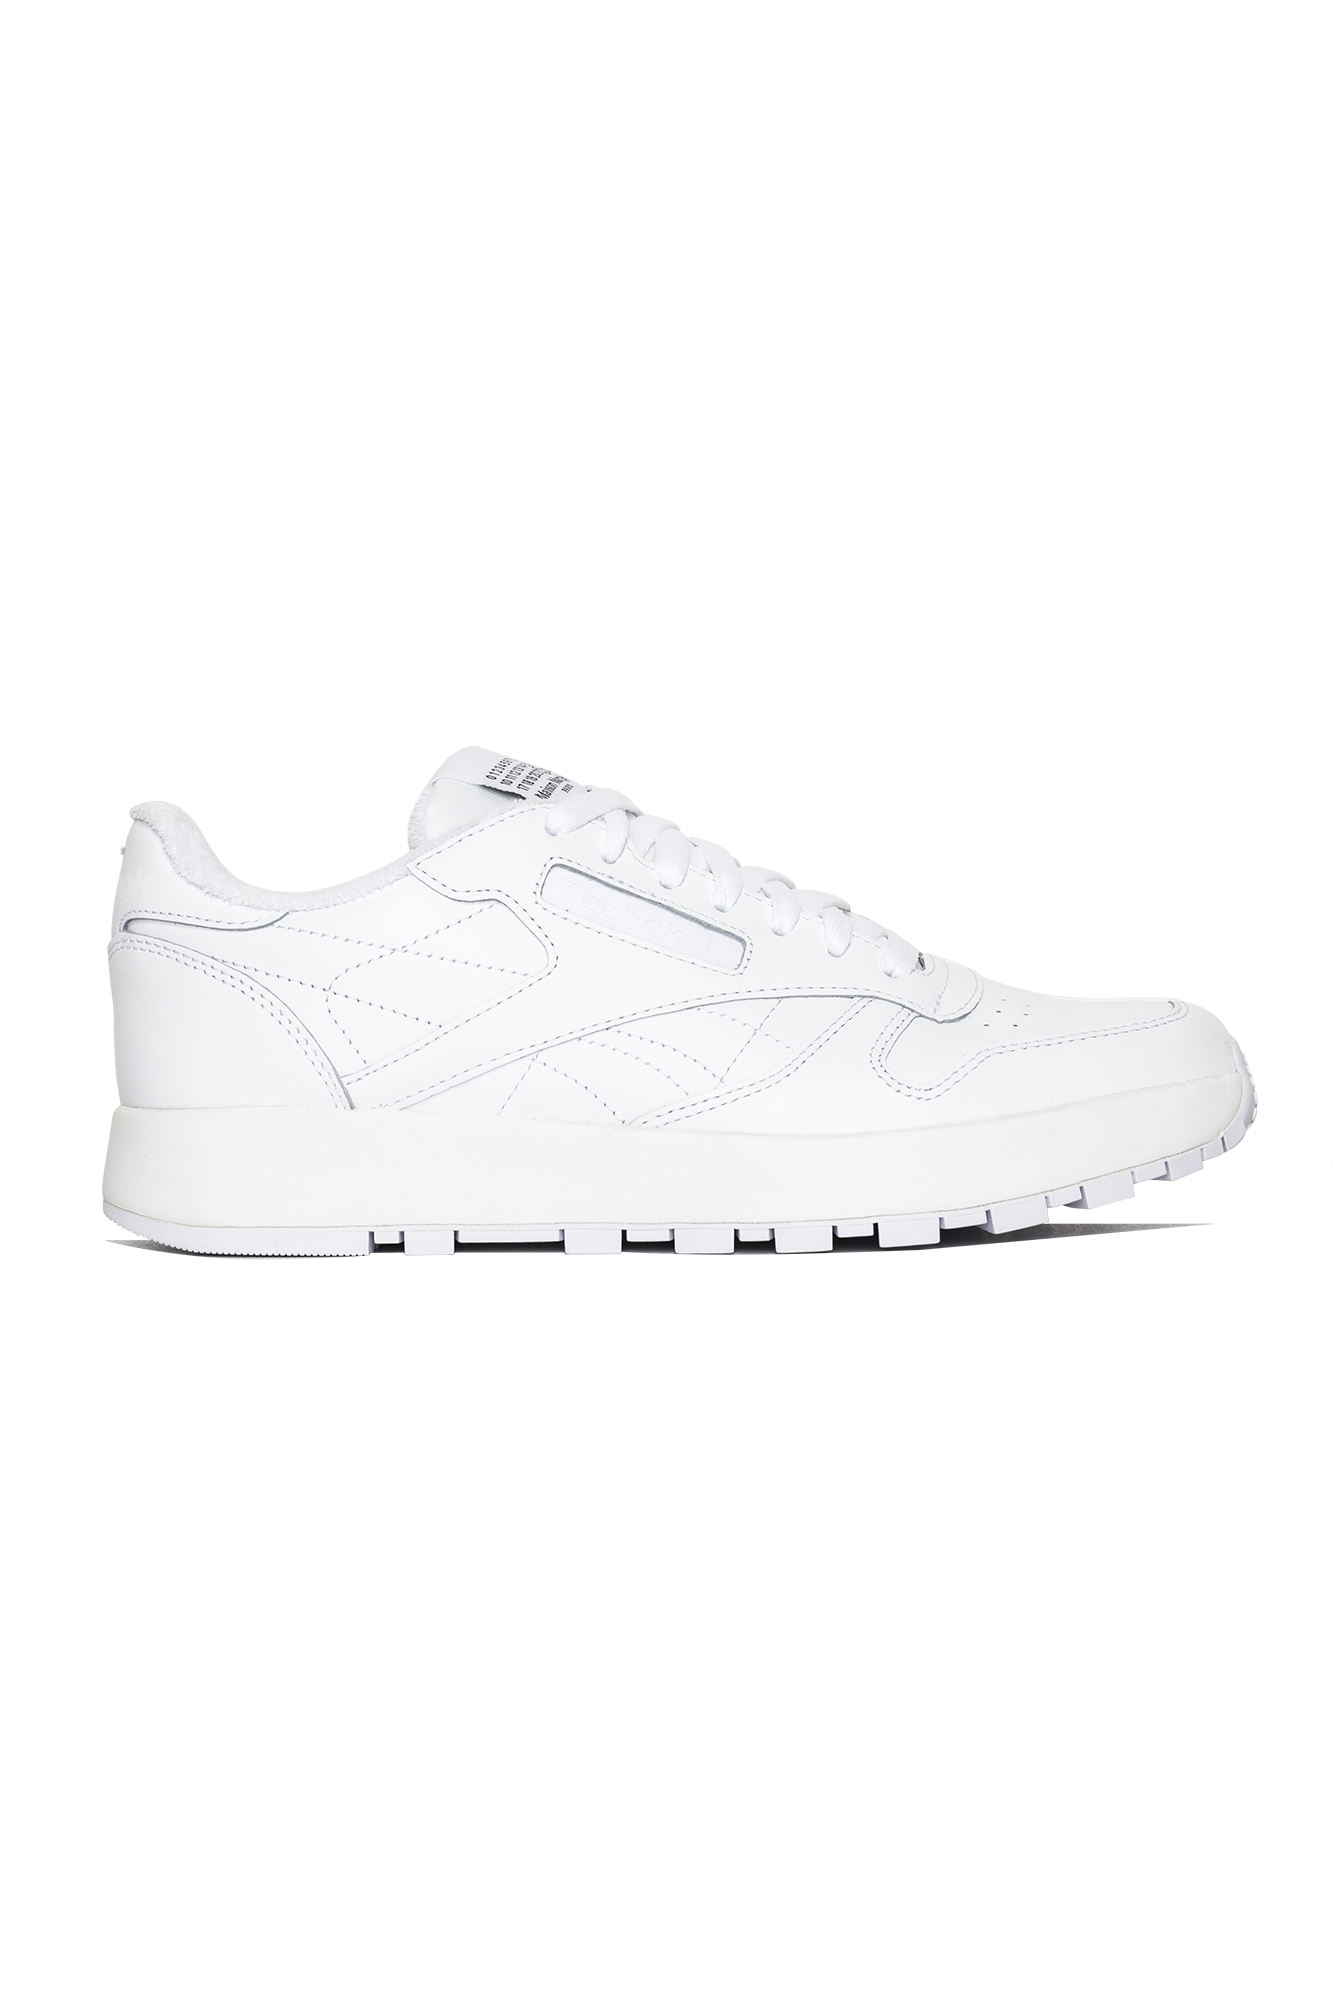 Reebok Sneakers Project 0 CC TL x Maison Margiela White H04865#000#WHT#6 - One Block Down